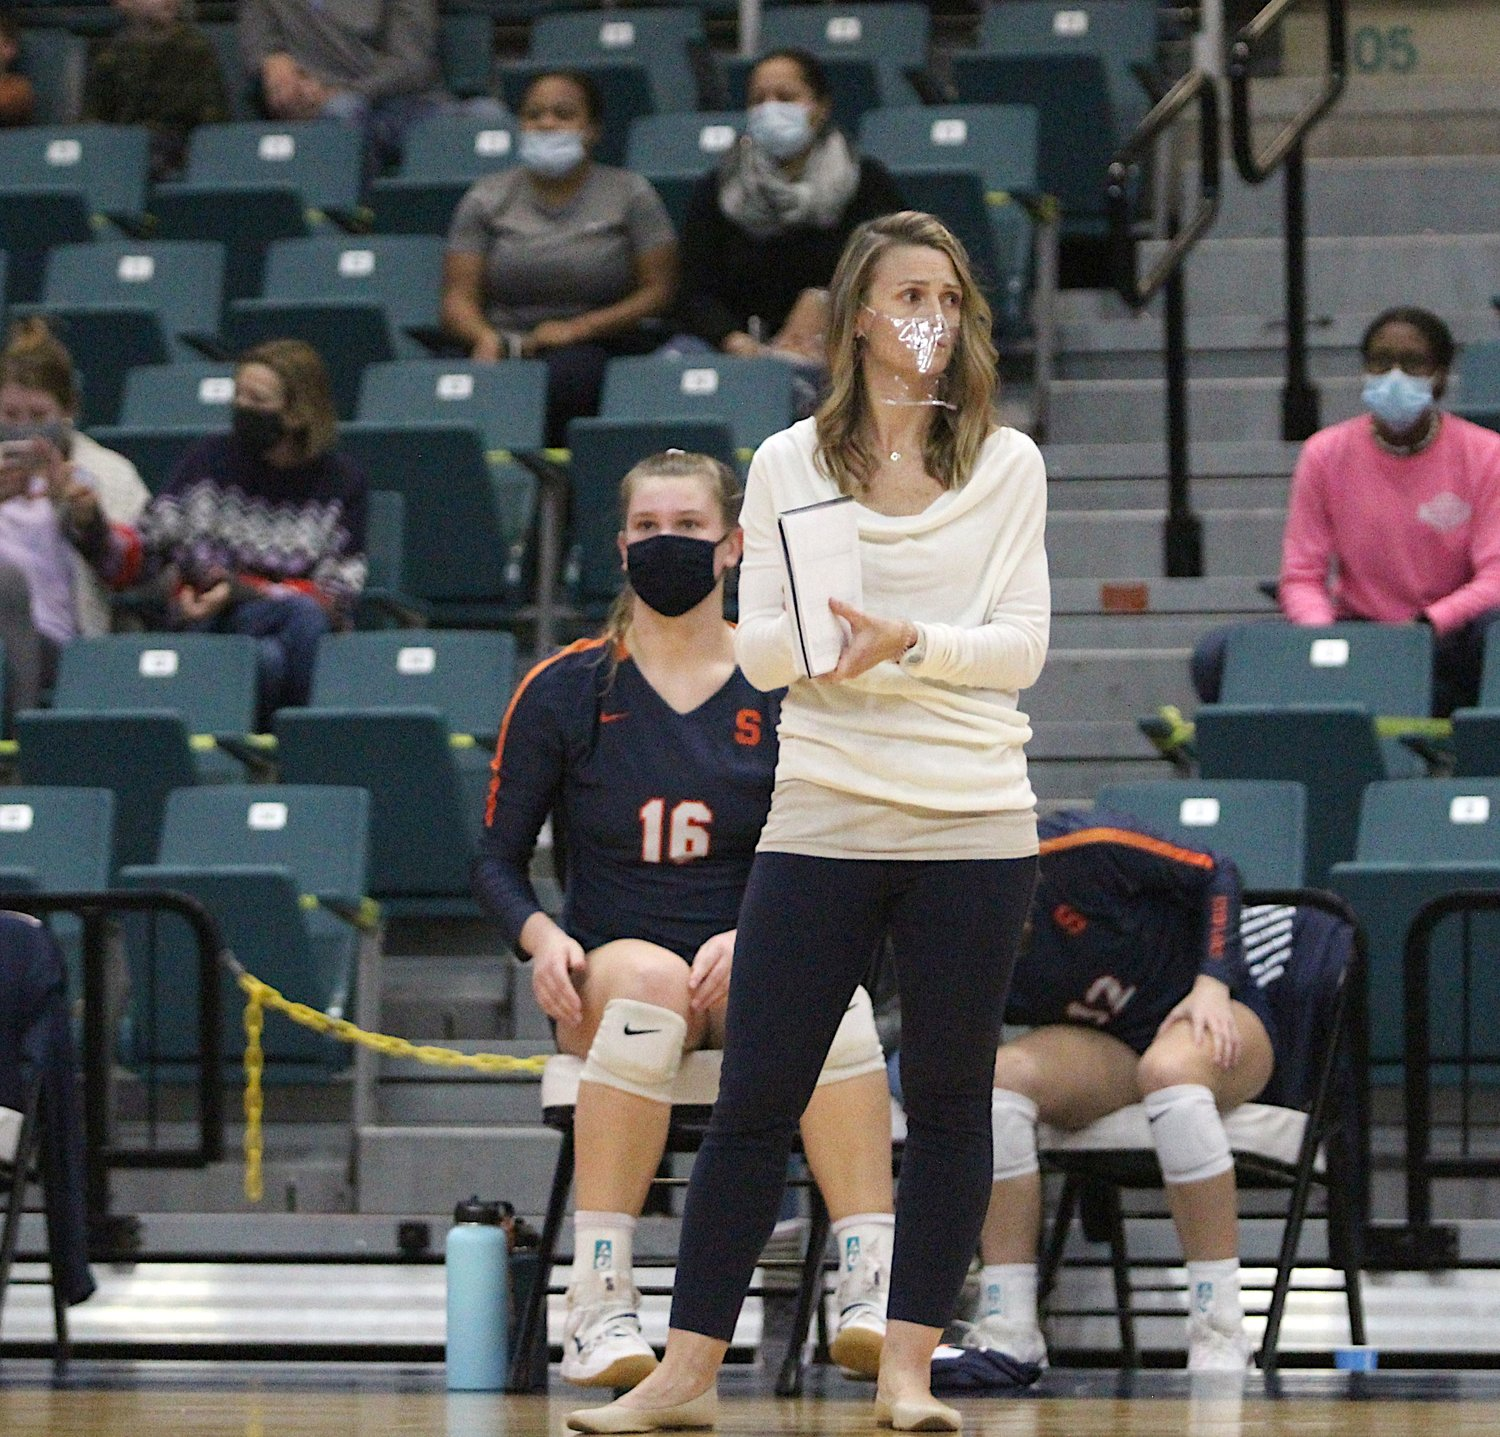 Seven Lakes coach Amy Cataline looks on during the team's Class 6A regional final match against Katy on Dec. 4 at the Merrell Center.